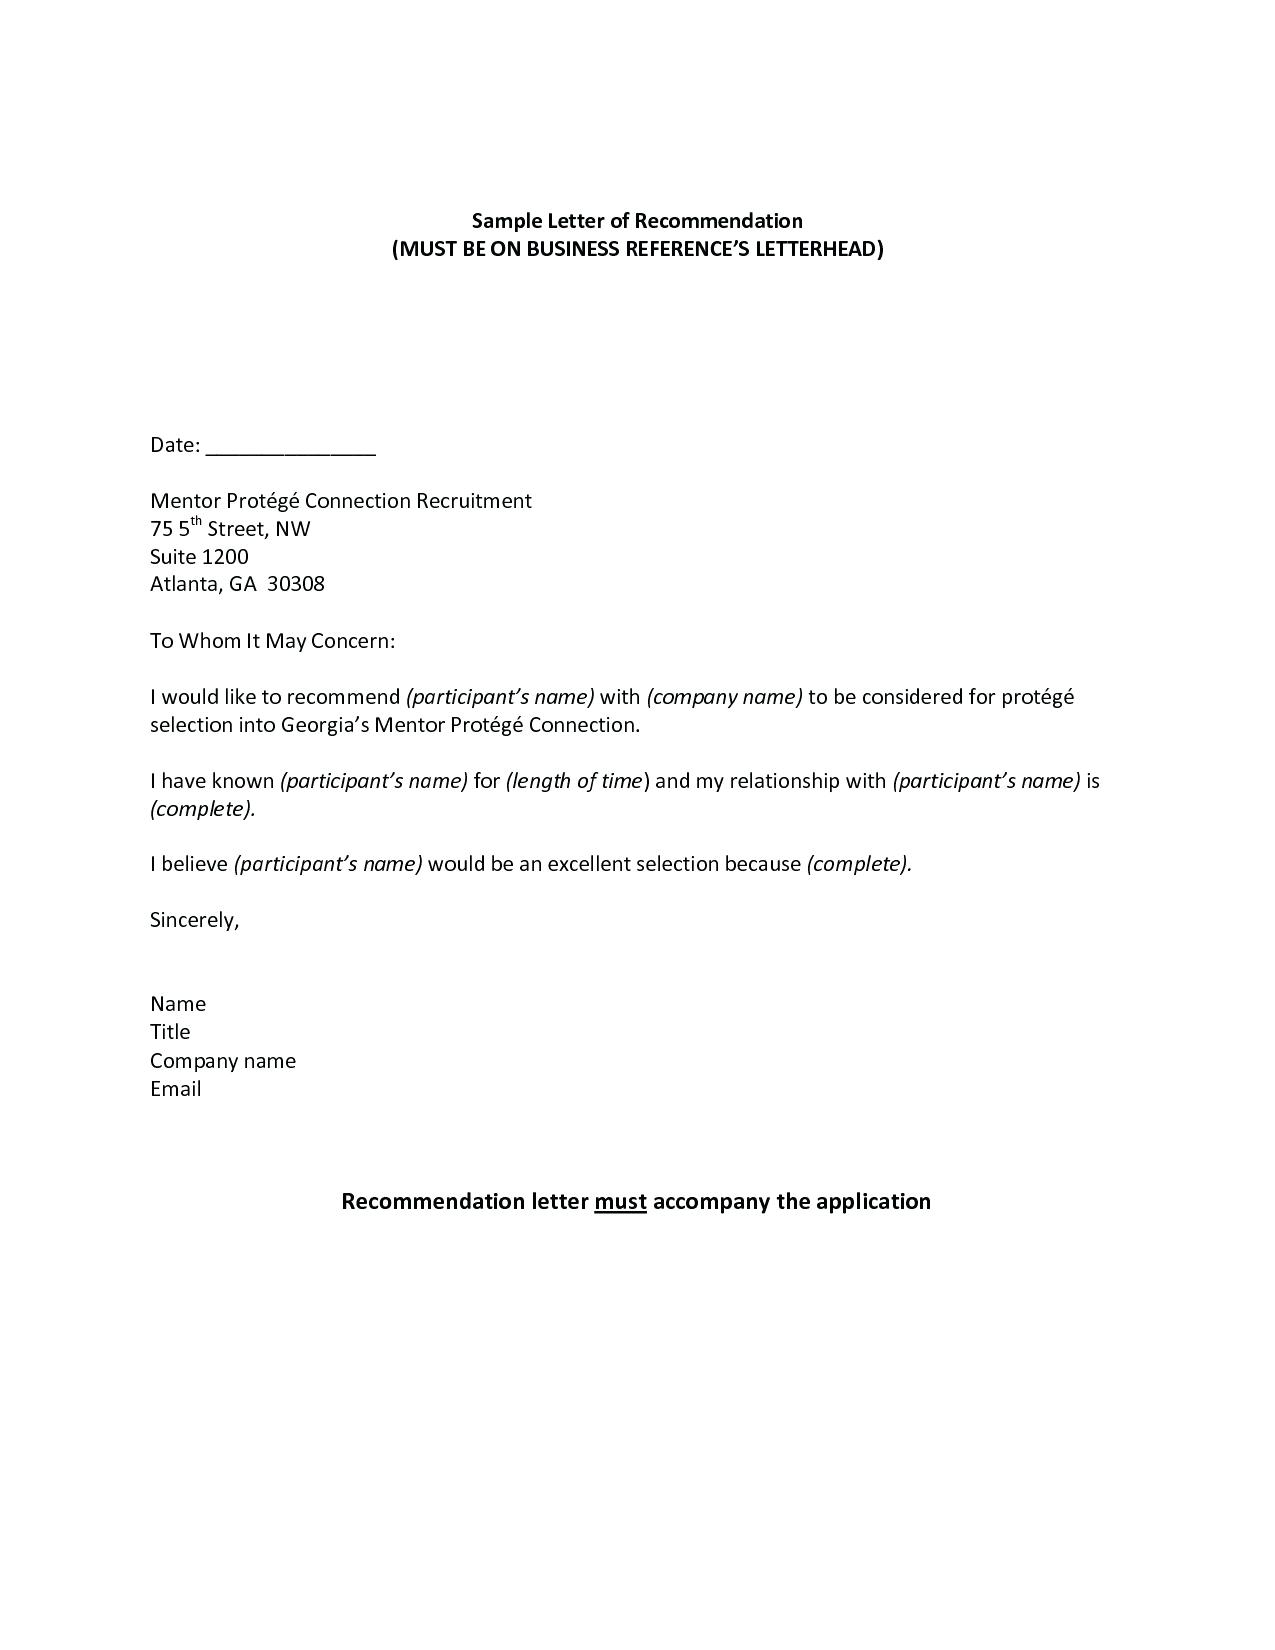 mortgage reference letter from employer template